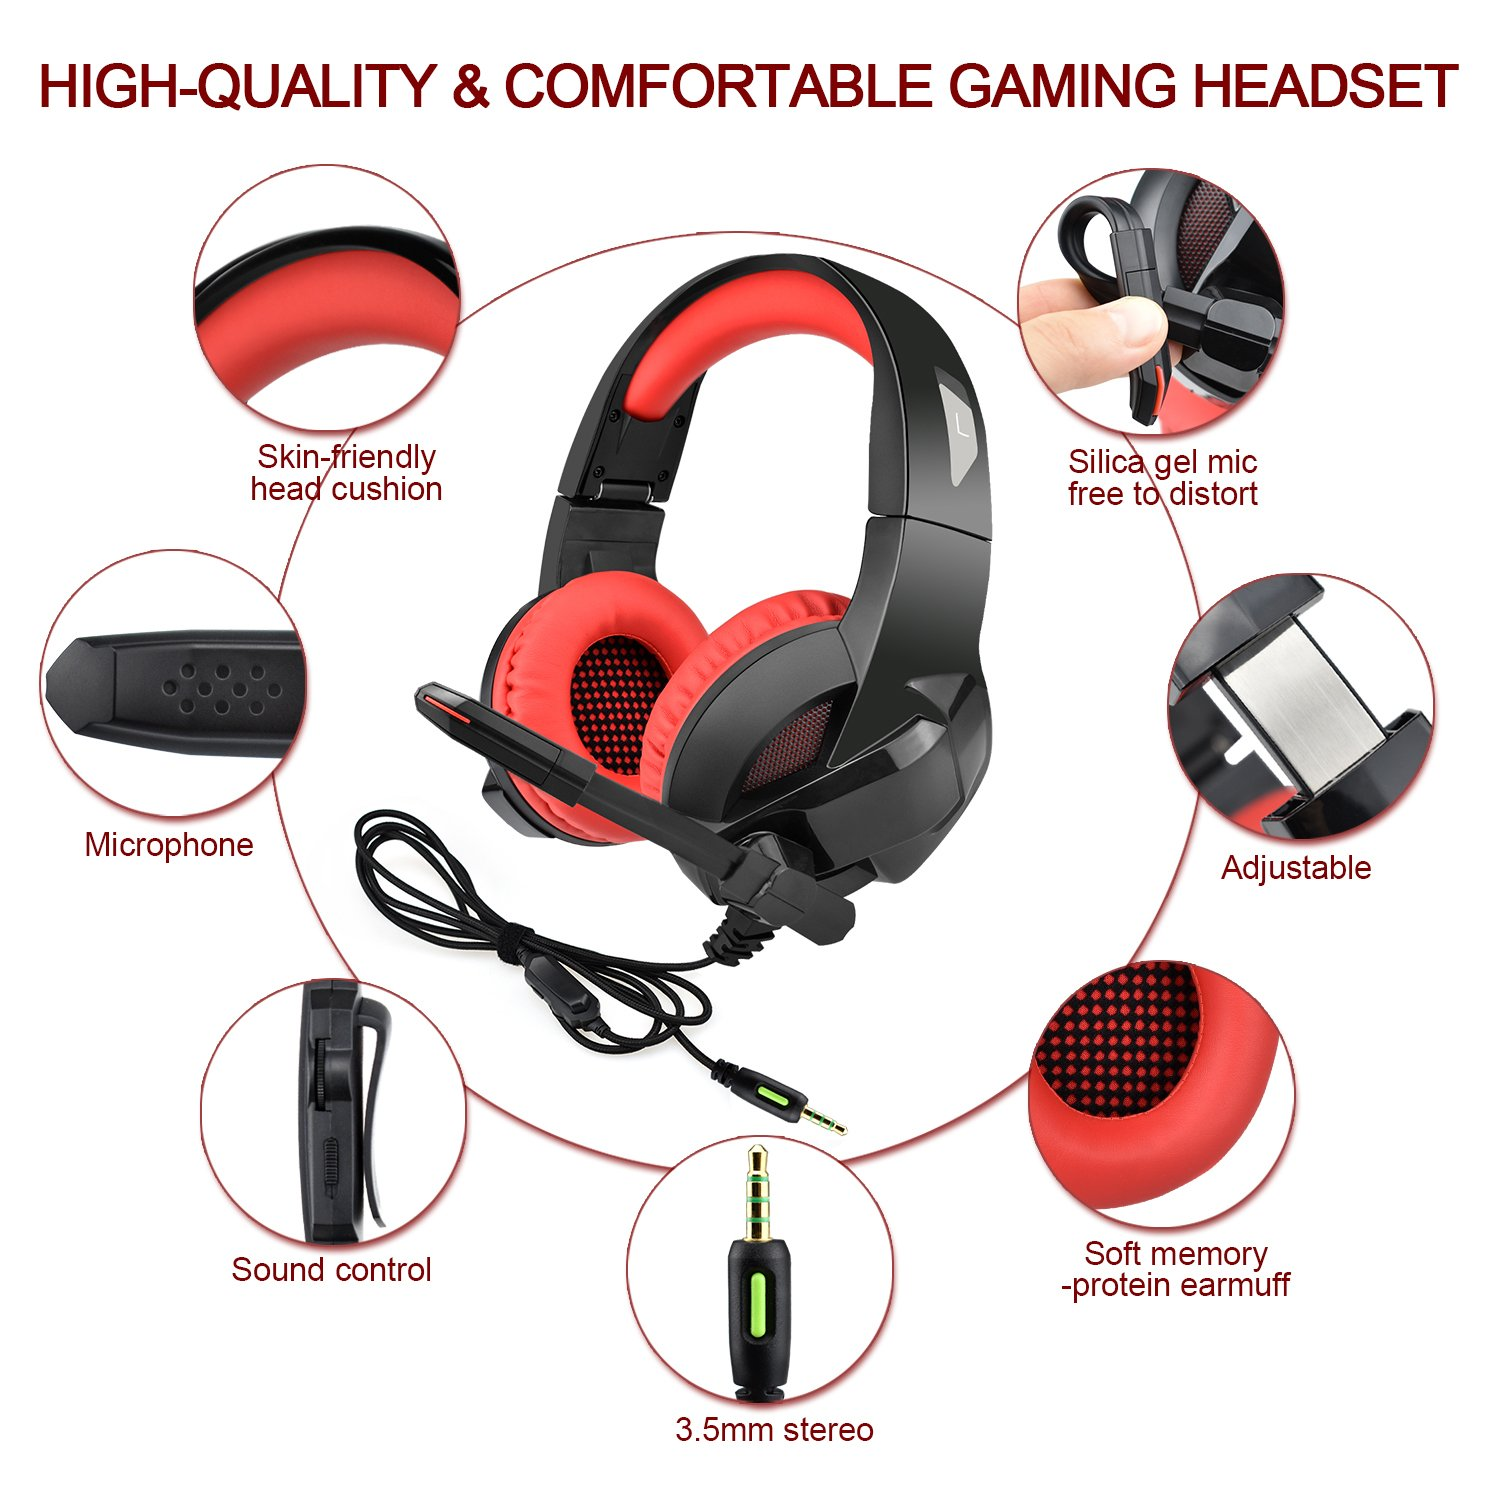 INSMART PS4 Gaming Headset, Foldable